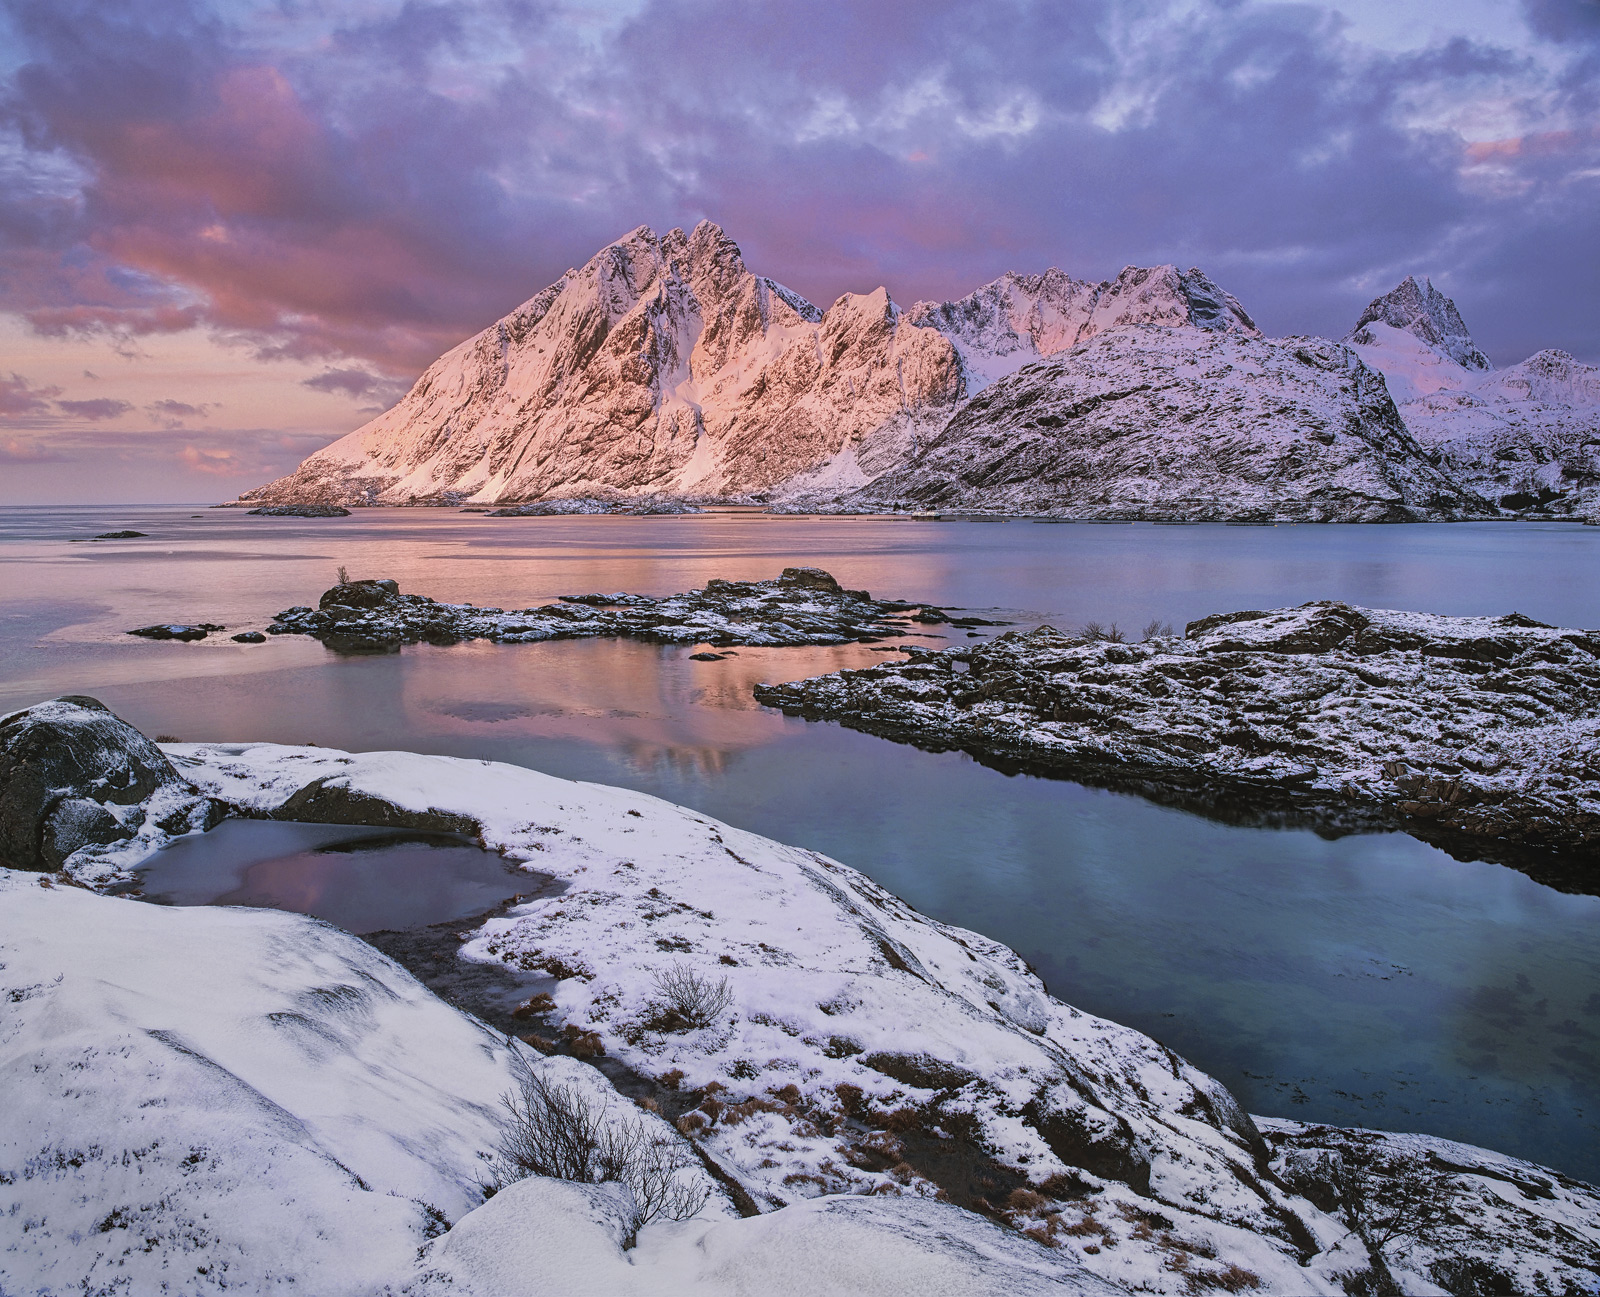 This is rapidly becoming one of my very favourite locations on the remarkable island of Lofoten. The mountains are impossibly...